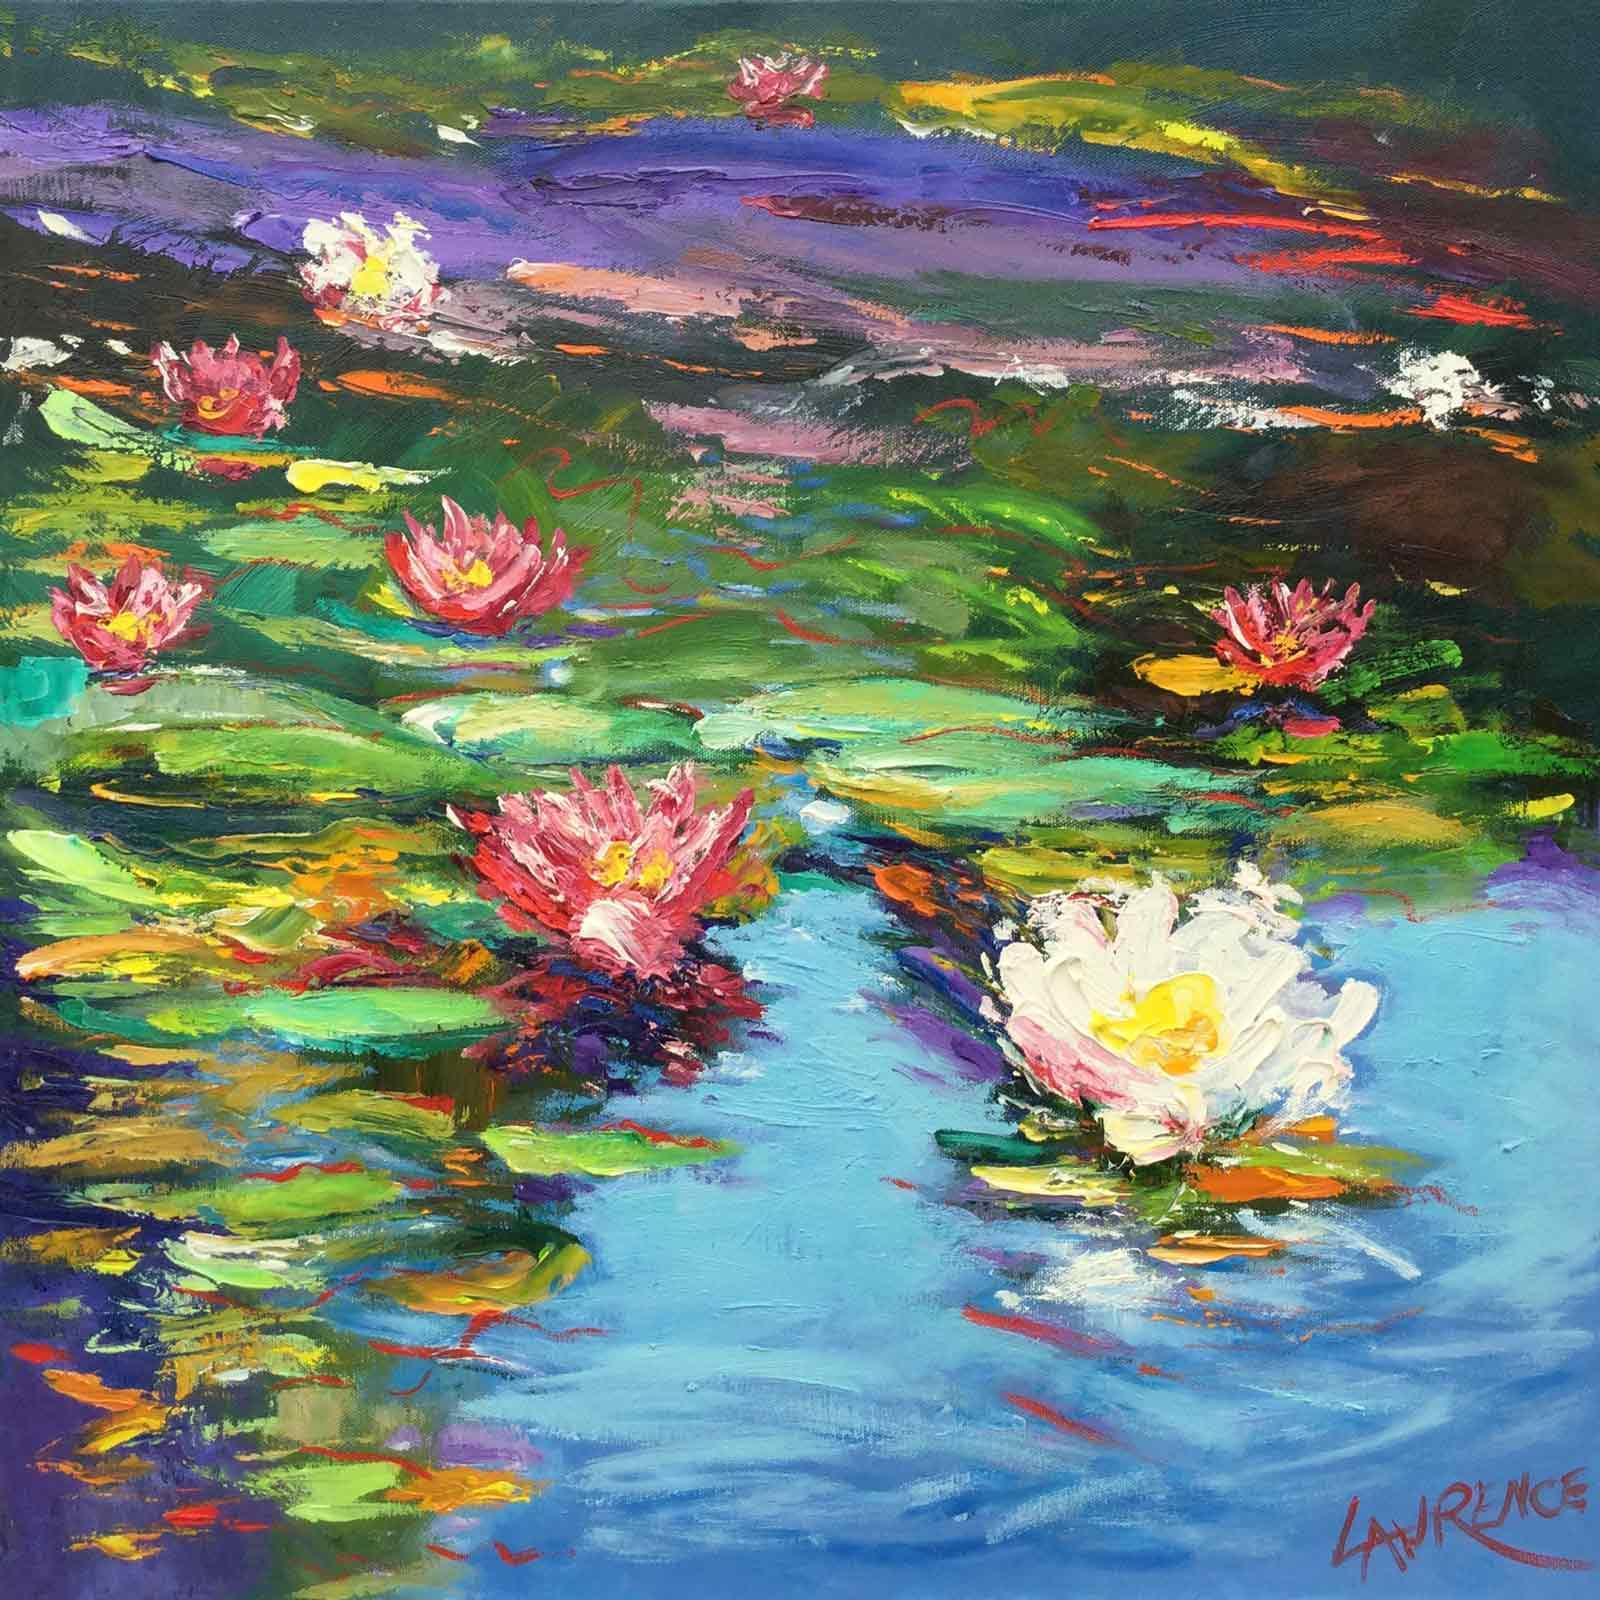 Waterlilies Opening in the Sunshine, John Lawrence